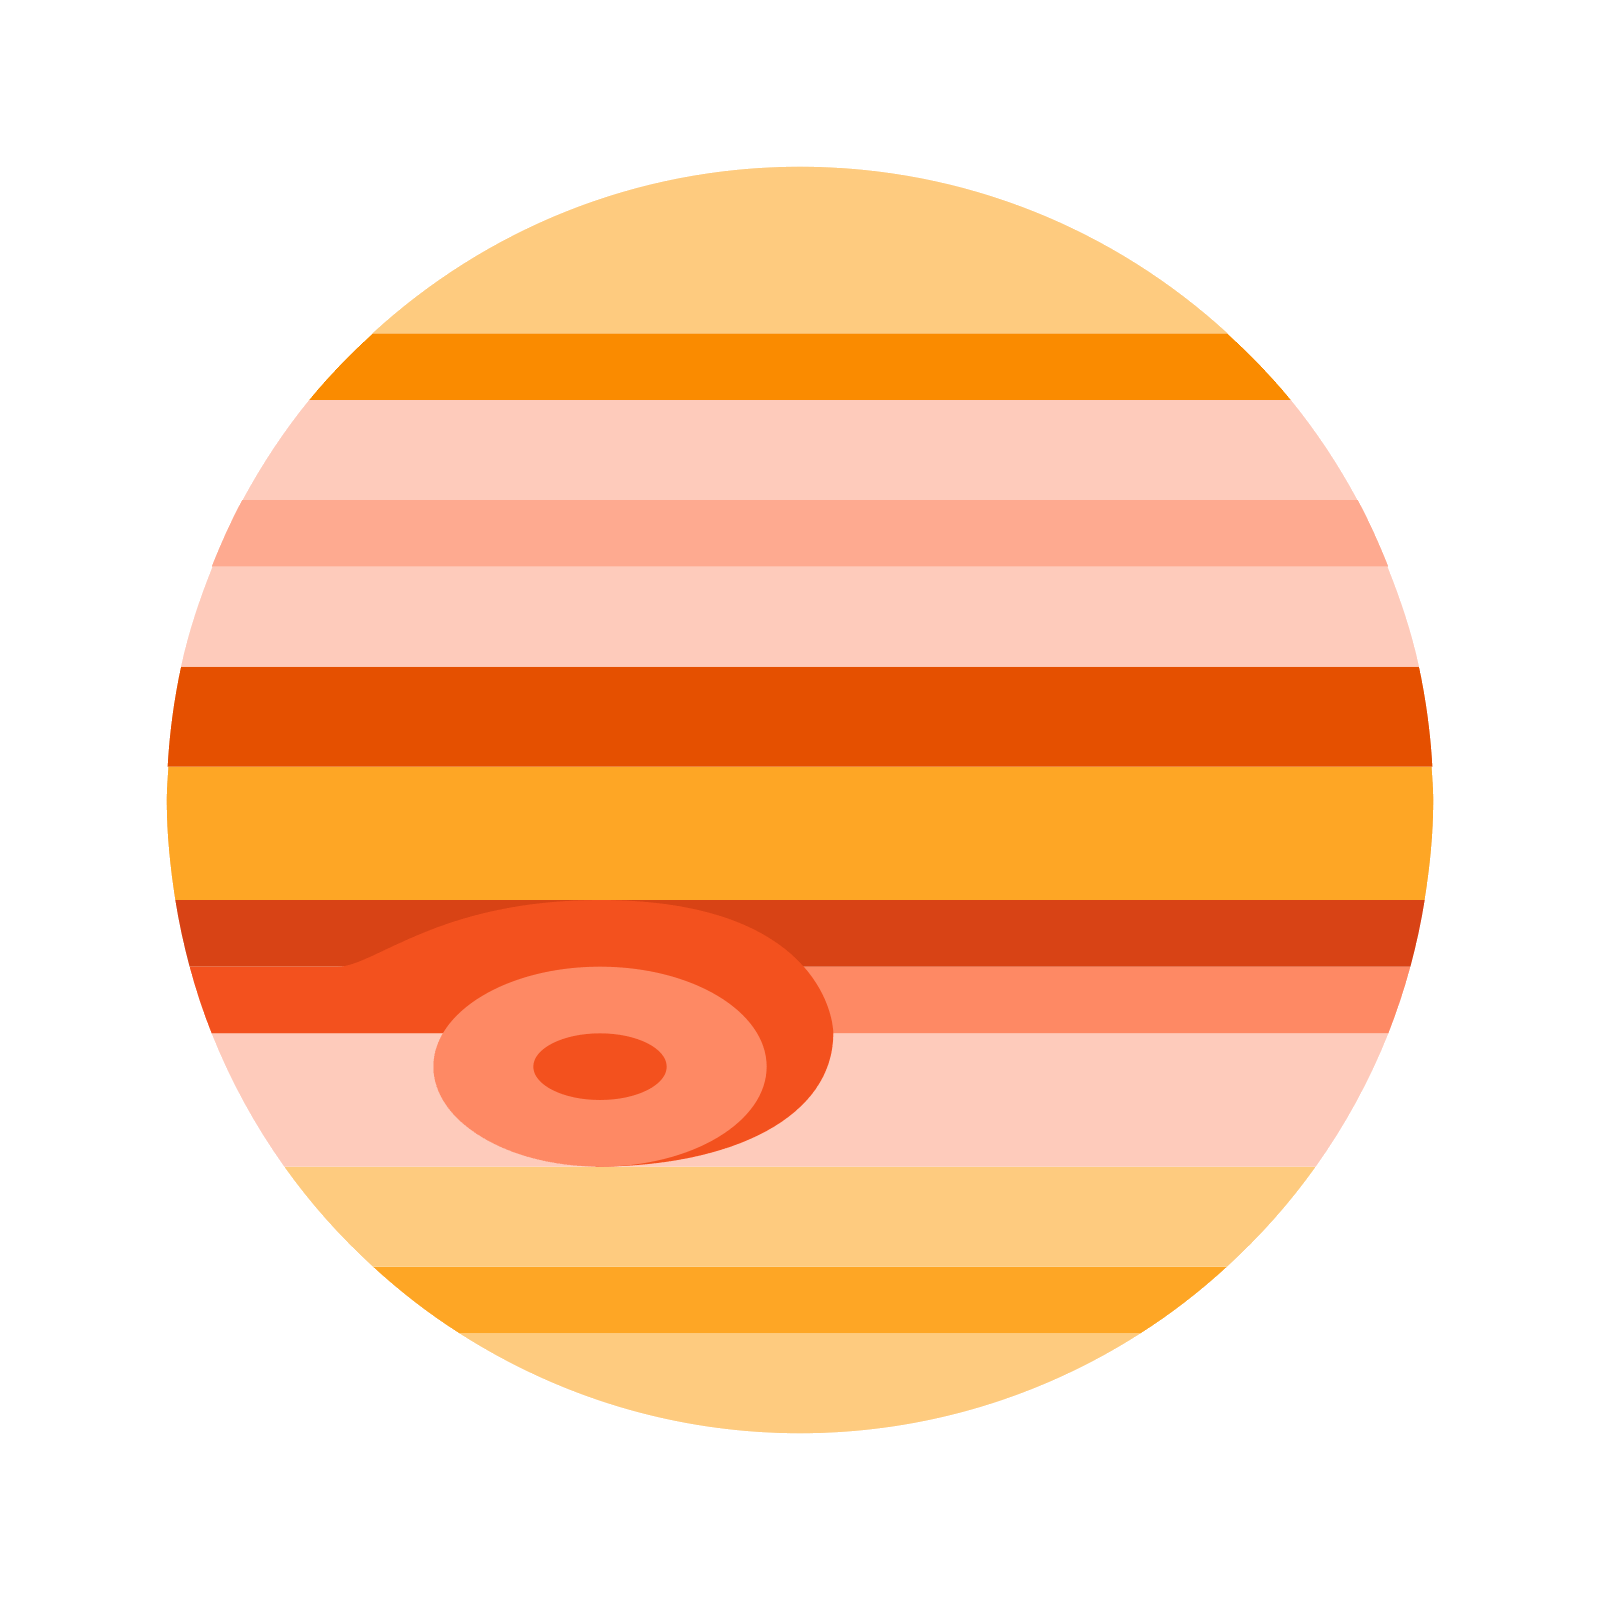 Jupiter planet png. Icon